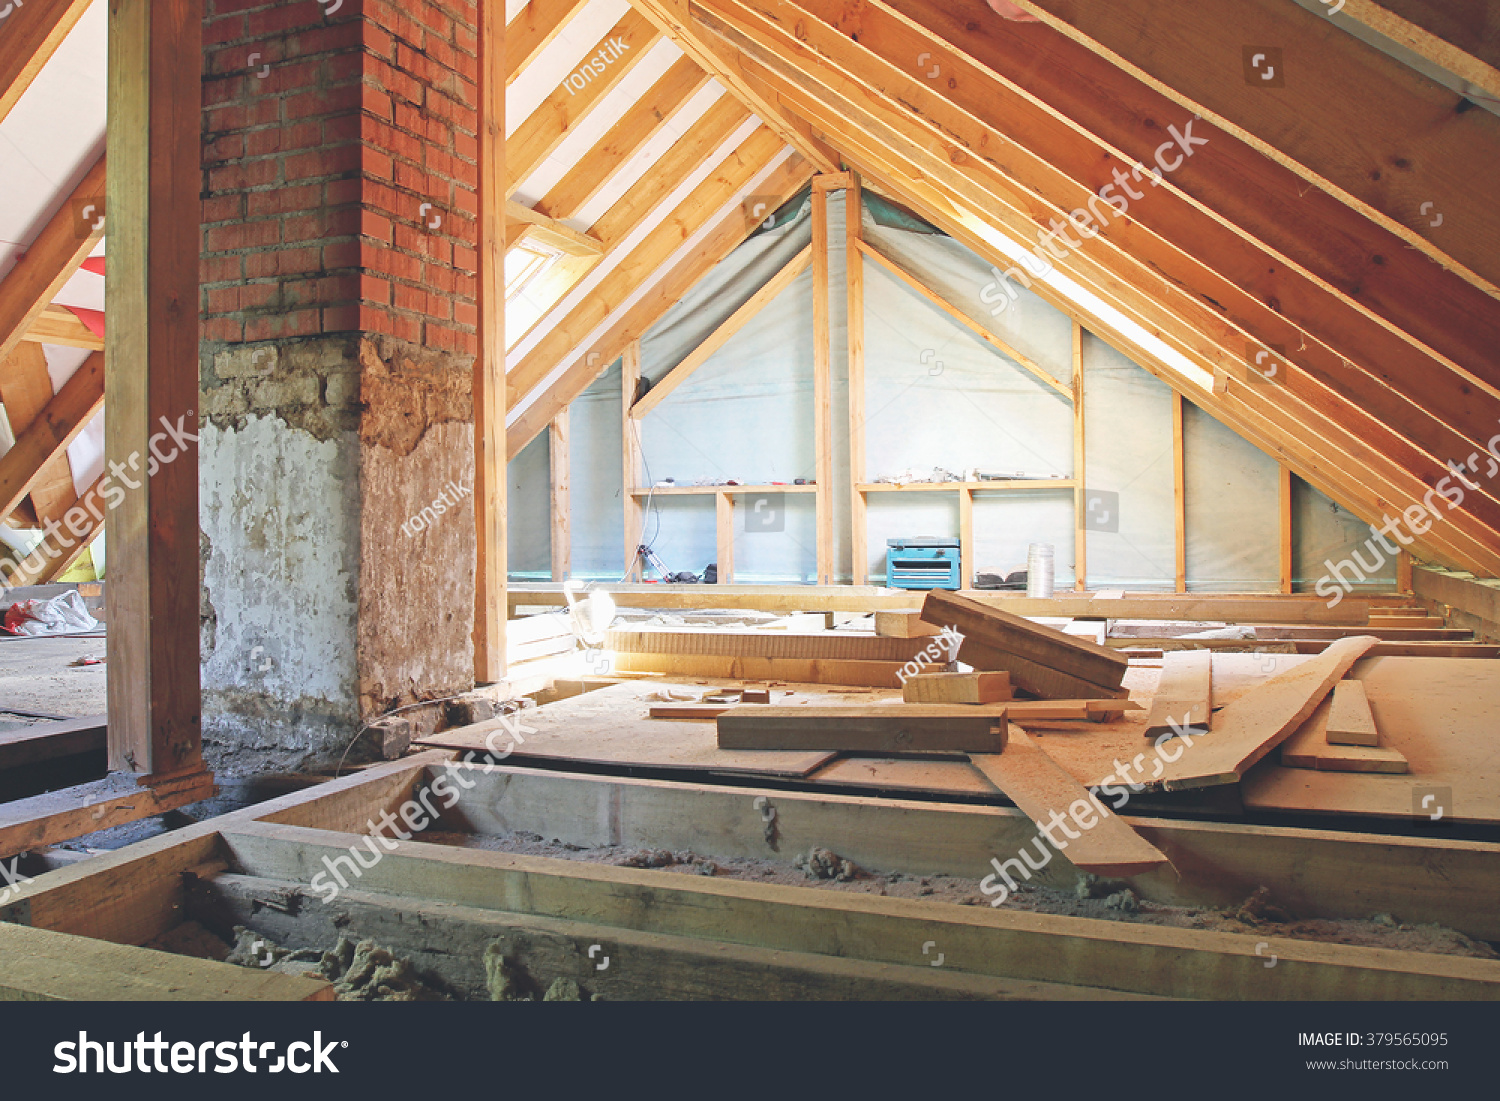 stock-photo-an-interior-view-of-a-house-attic-under-construction-379565095